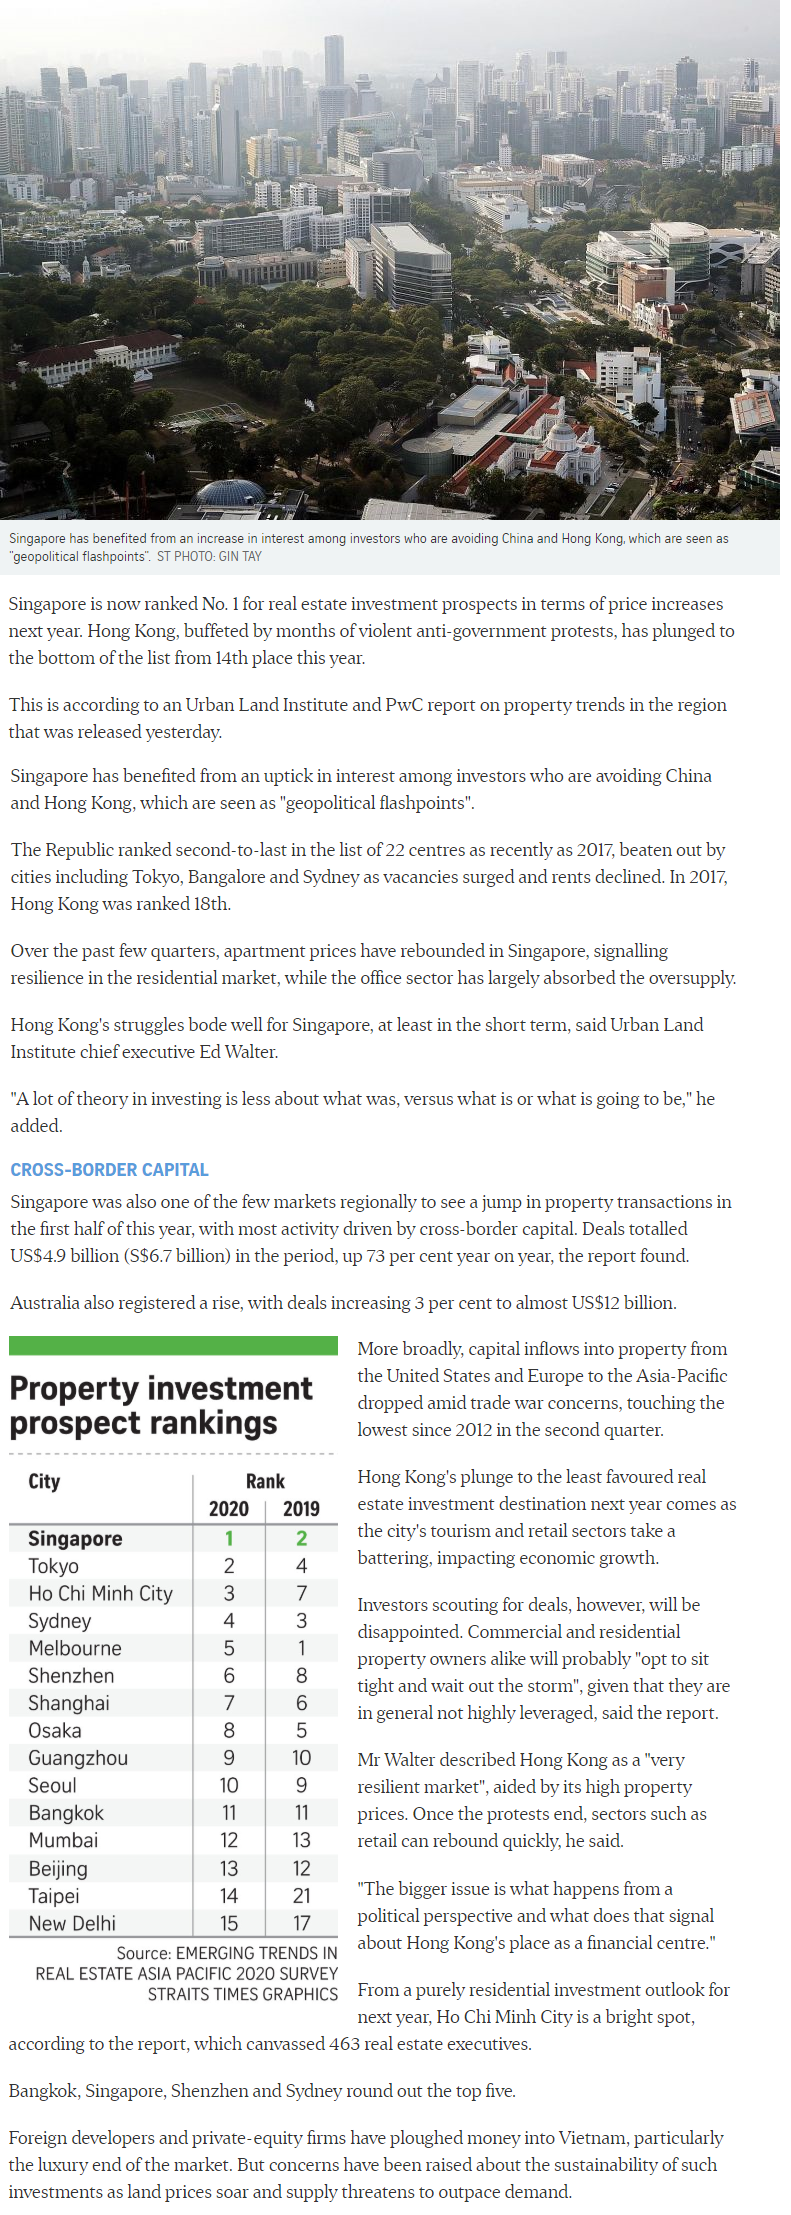 The Gazania - Singapore Tops Region For Property Investment Prospects